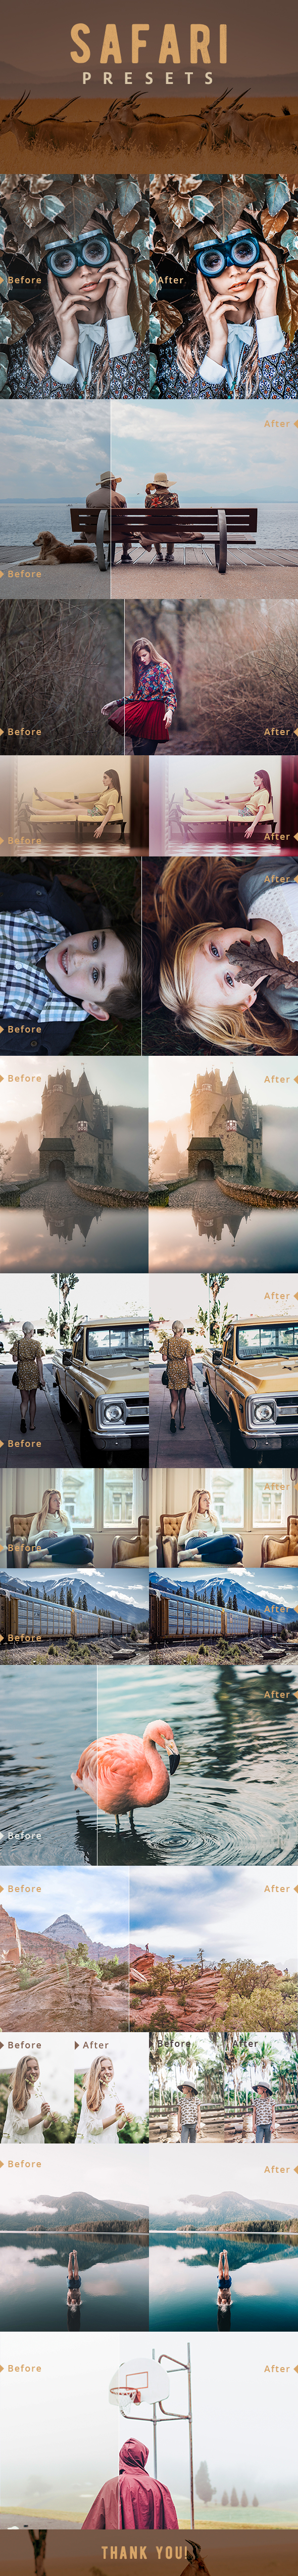 Safari Lightroom Presets - Film Lightroom Presets